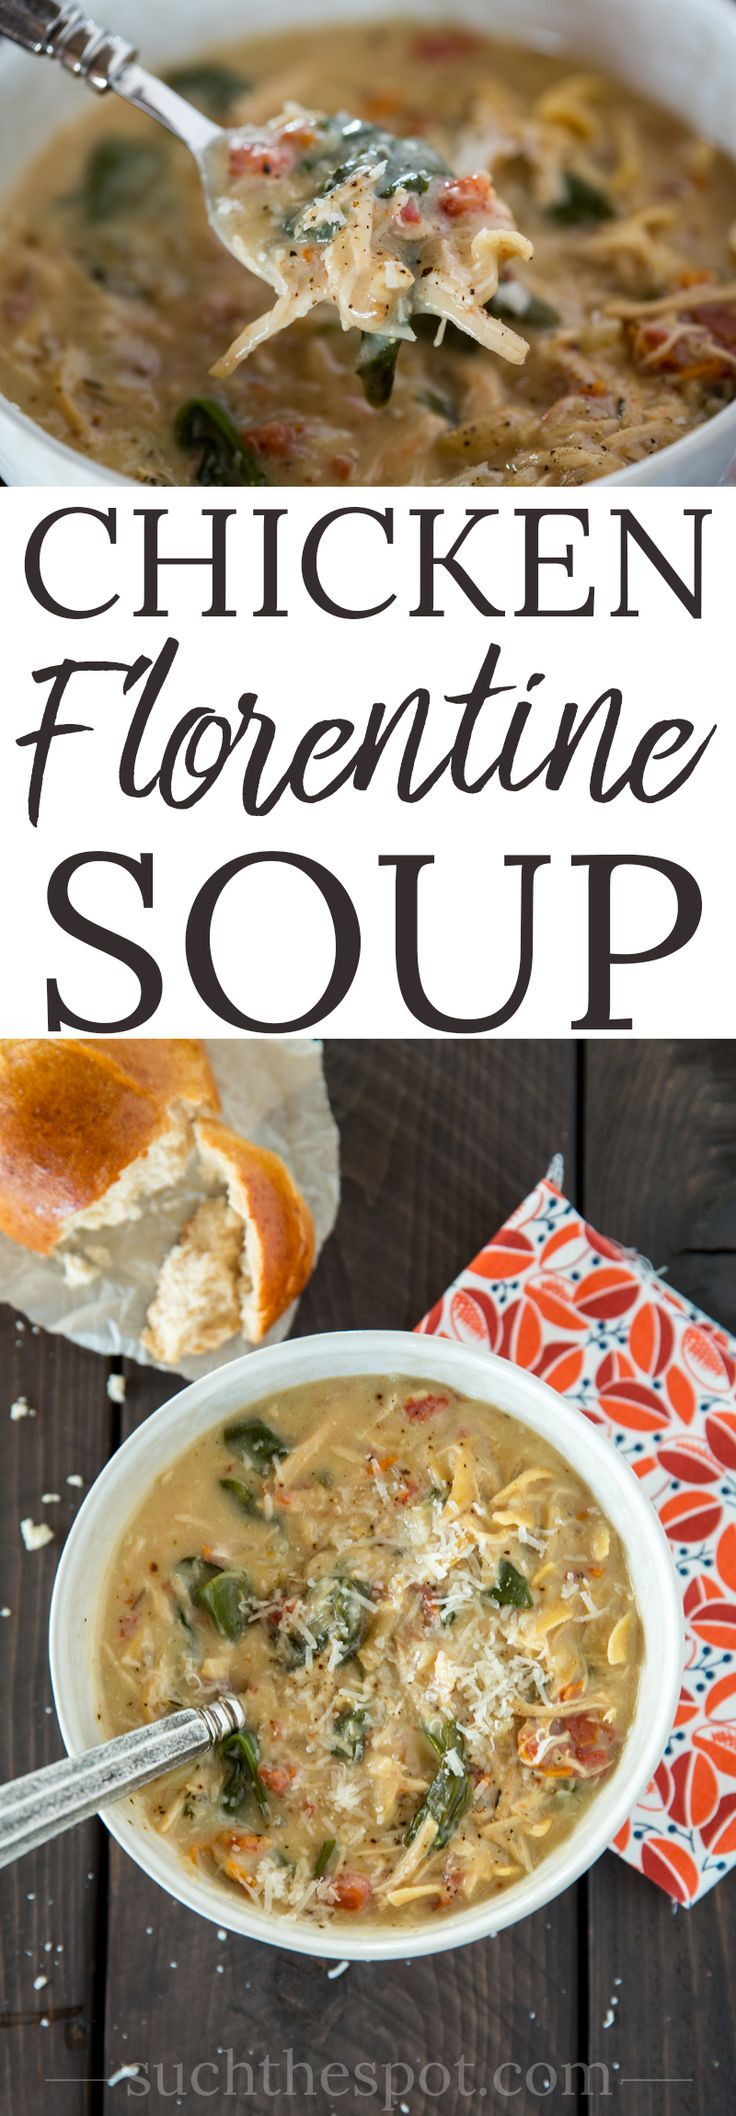 When I'm in the mood for a creamy comfort food, I turn to this Chicken Florentine soups recipe. It's healthy because it's made with all real food ingredients and it's easy because it's made in a slow cooker or Instant Pot.#soups